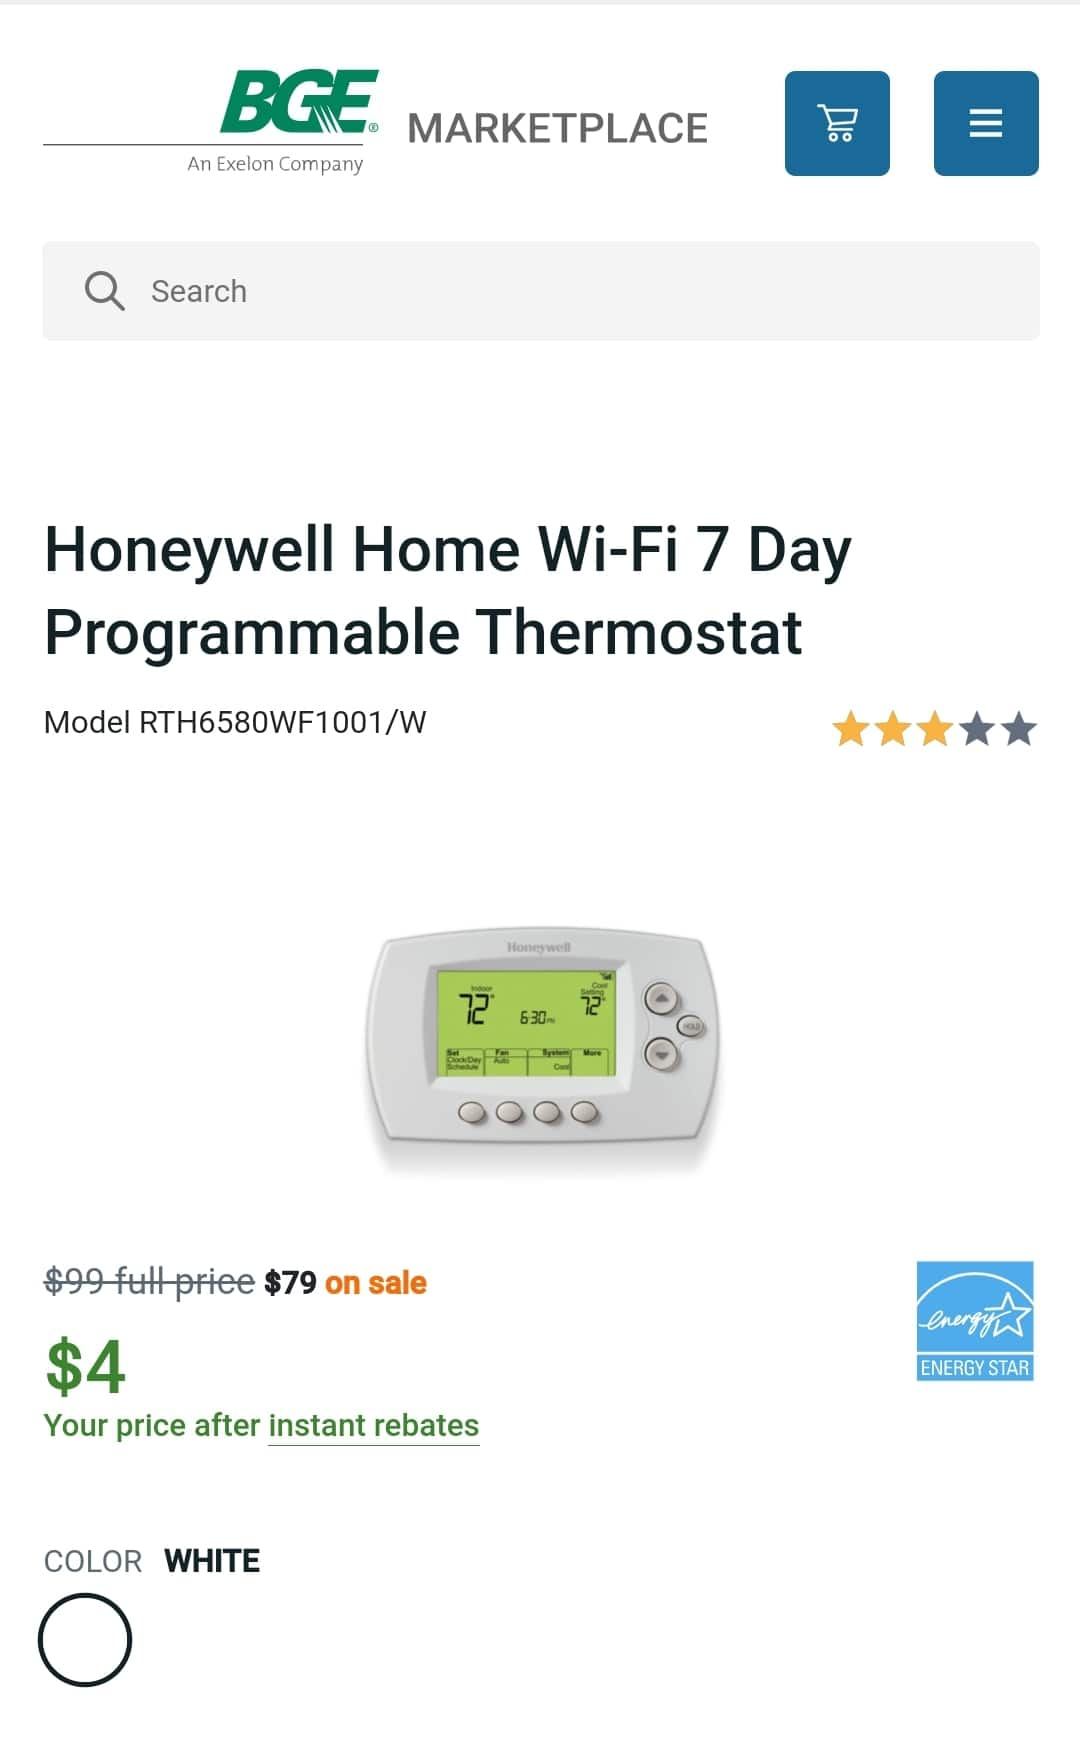 Baltimore/Maryland BGE customers only - Honeywell Home Wi-Fi 7 Day Programmable Thermostat for $4 plus shipping